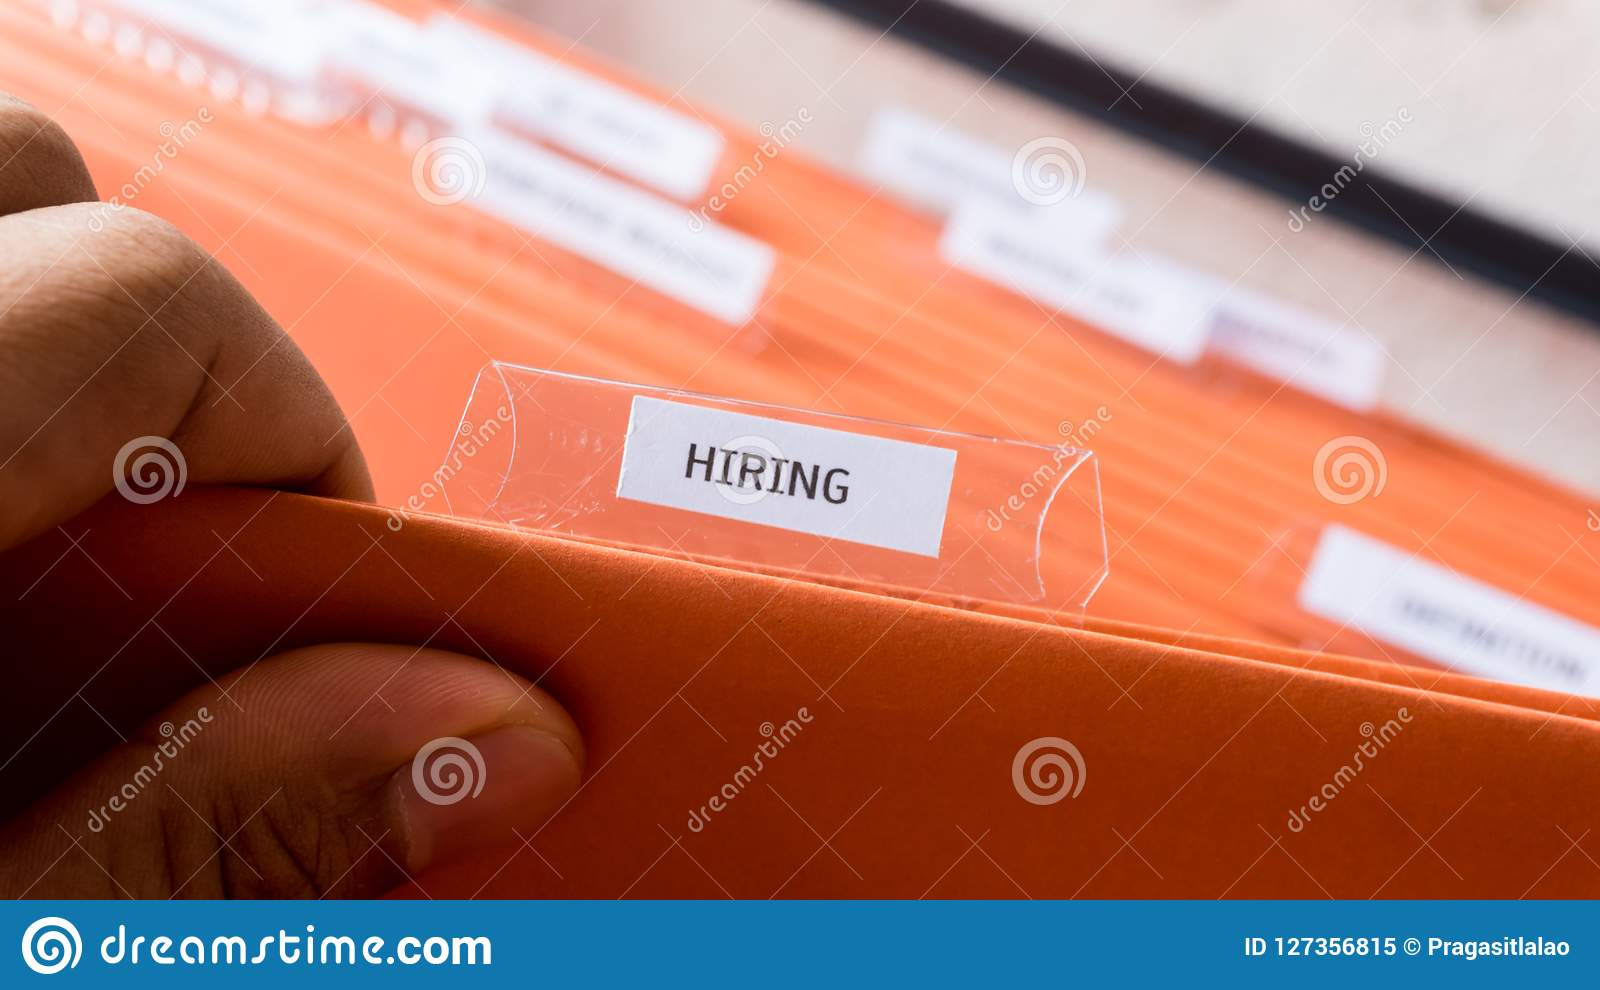 Company Hiring Recruit Manpower Record In Files Stock Image